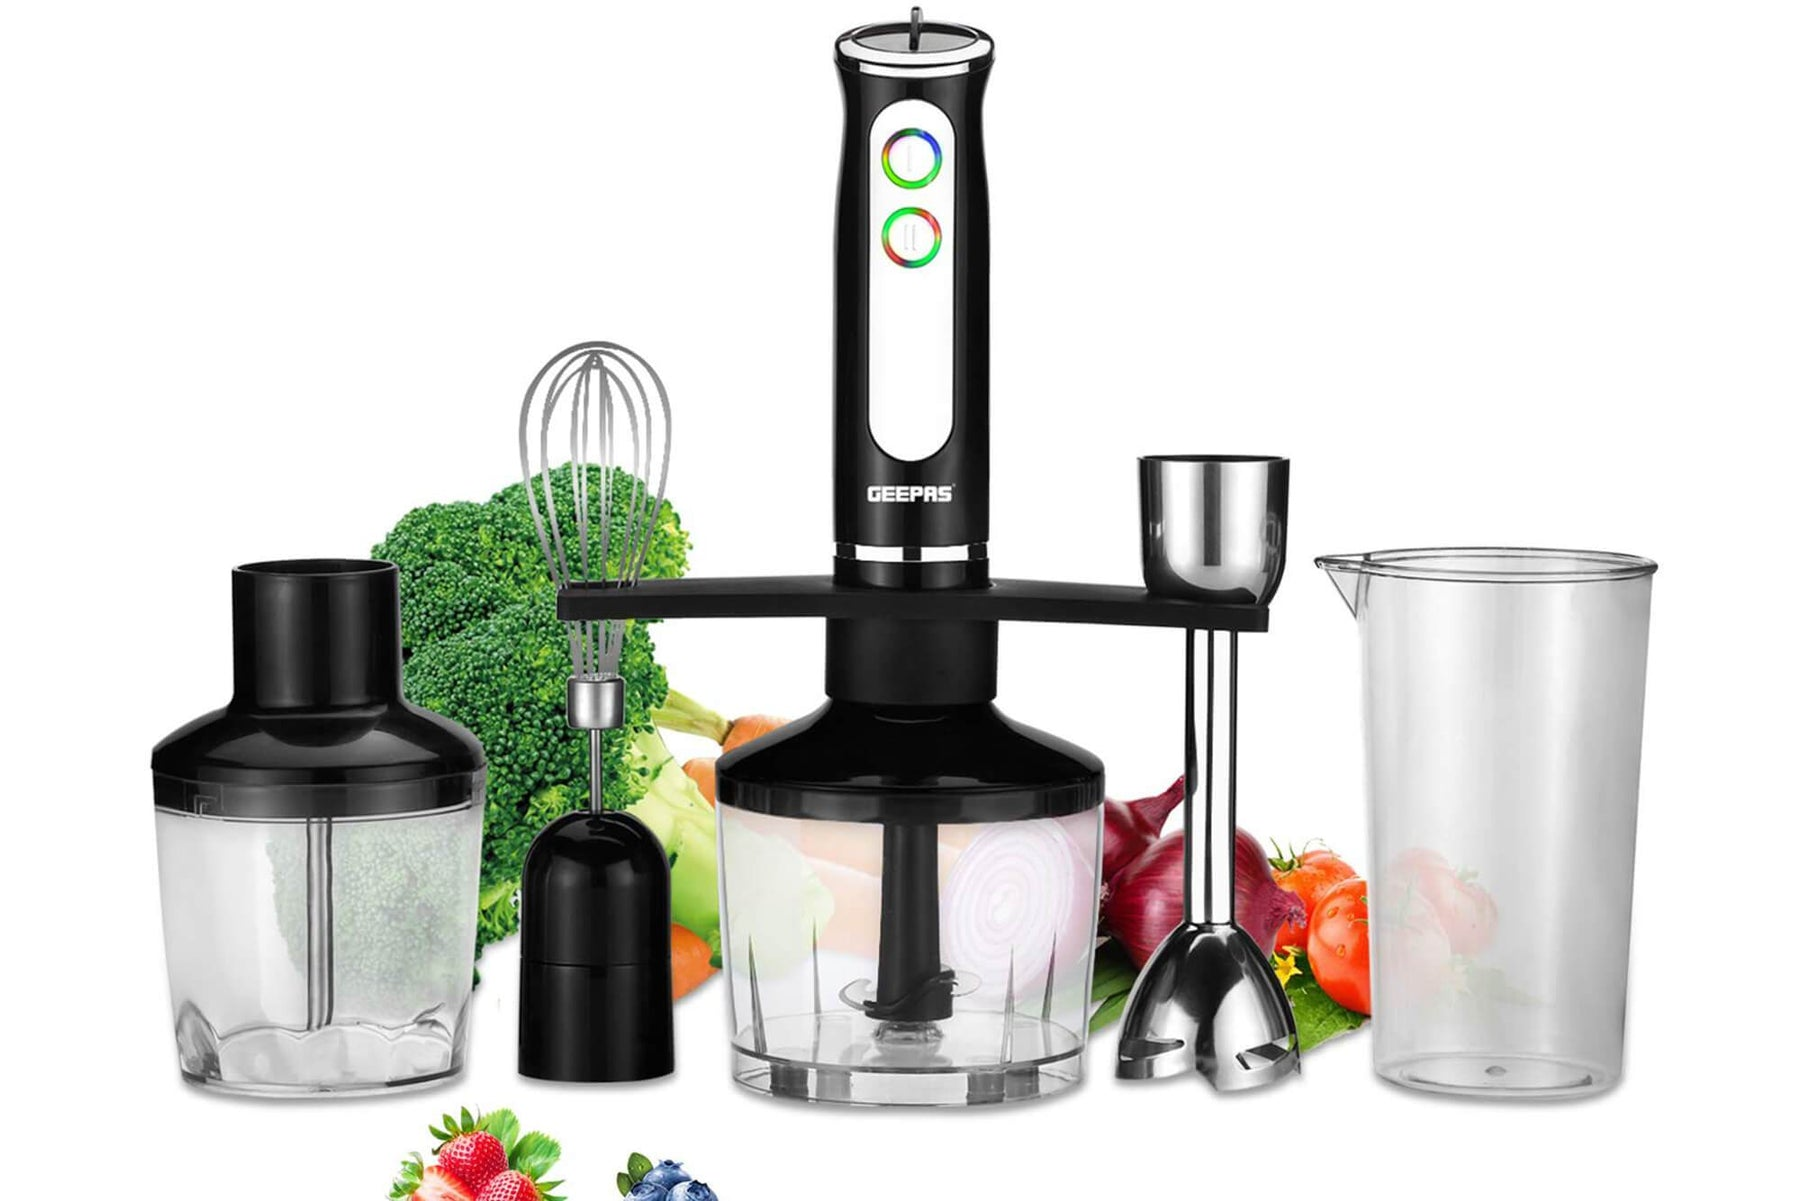 The Best Hand Blender for Versatility: The Geepas Formula